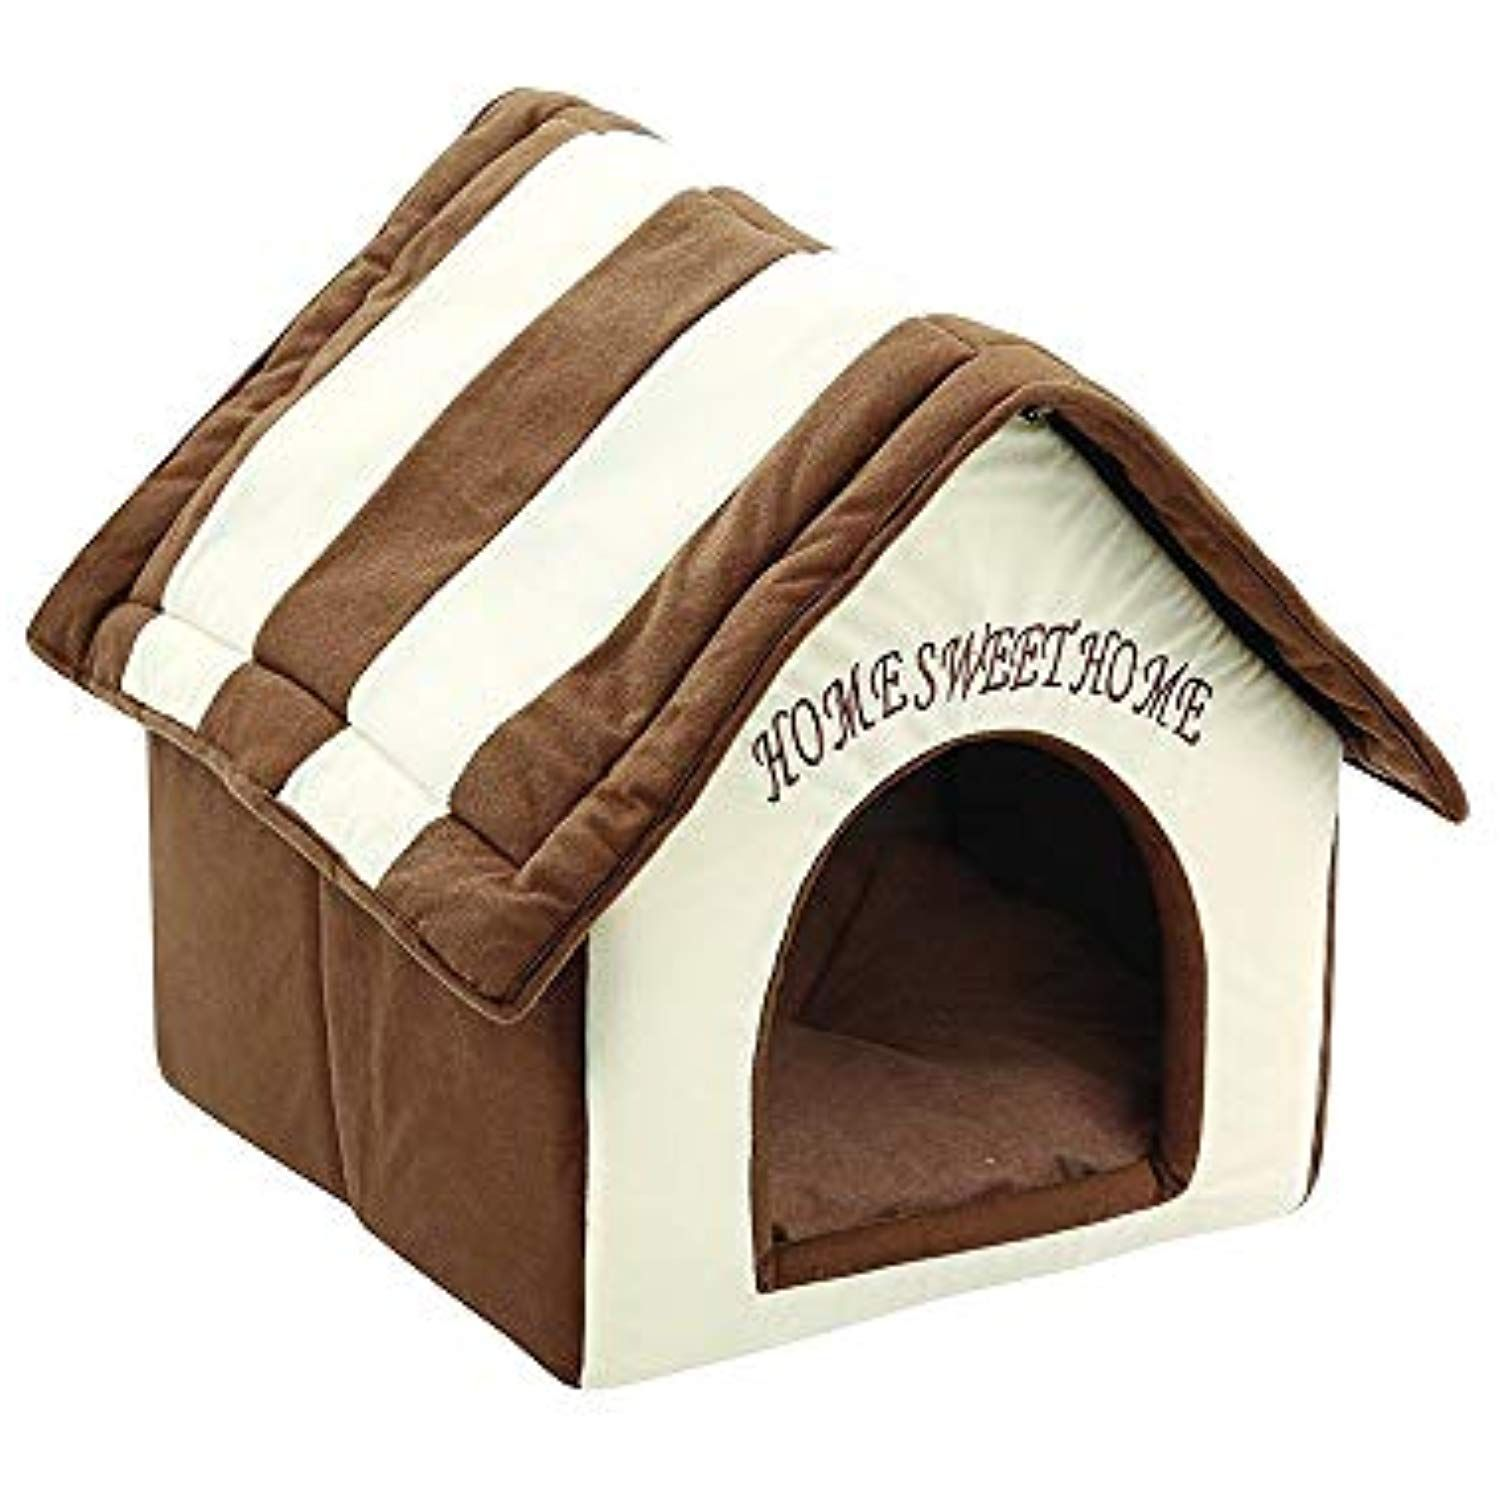 Pet Dog Cat Bed House Portable Indoor Sweet Room Soft Warm And